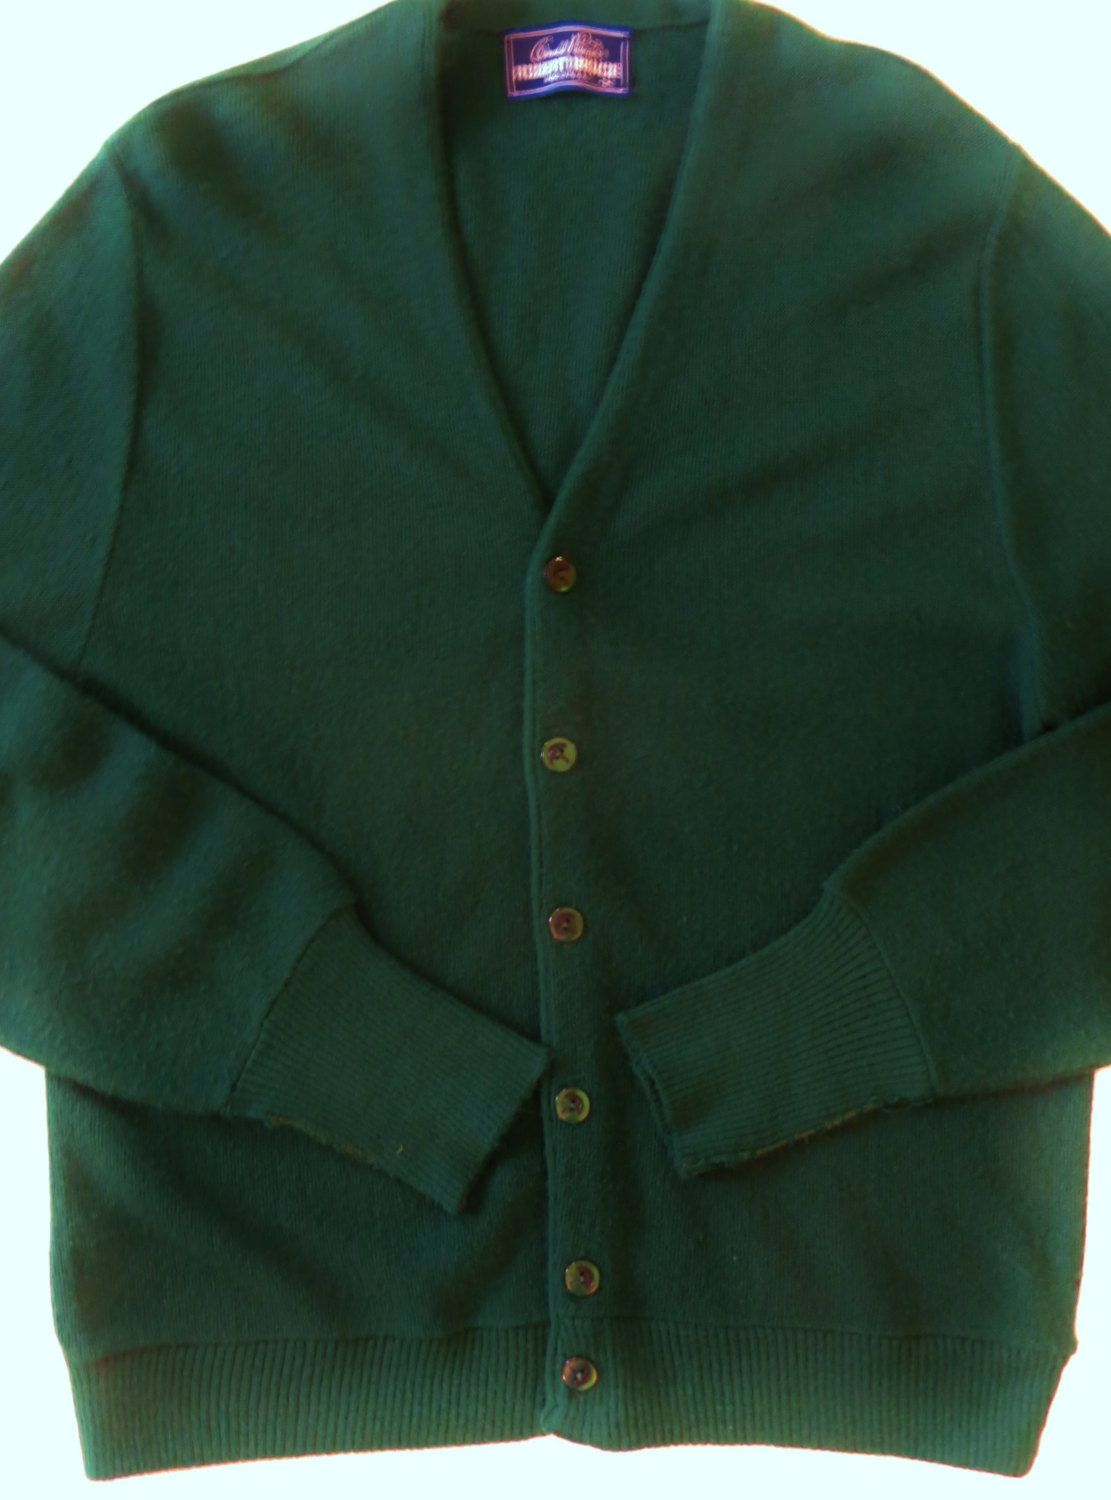 Handmade grey striped wool cardigan with green sleeves and buttons